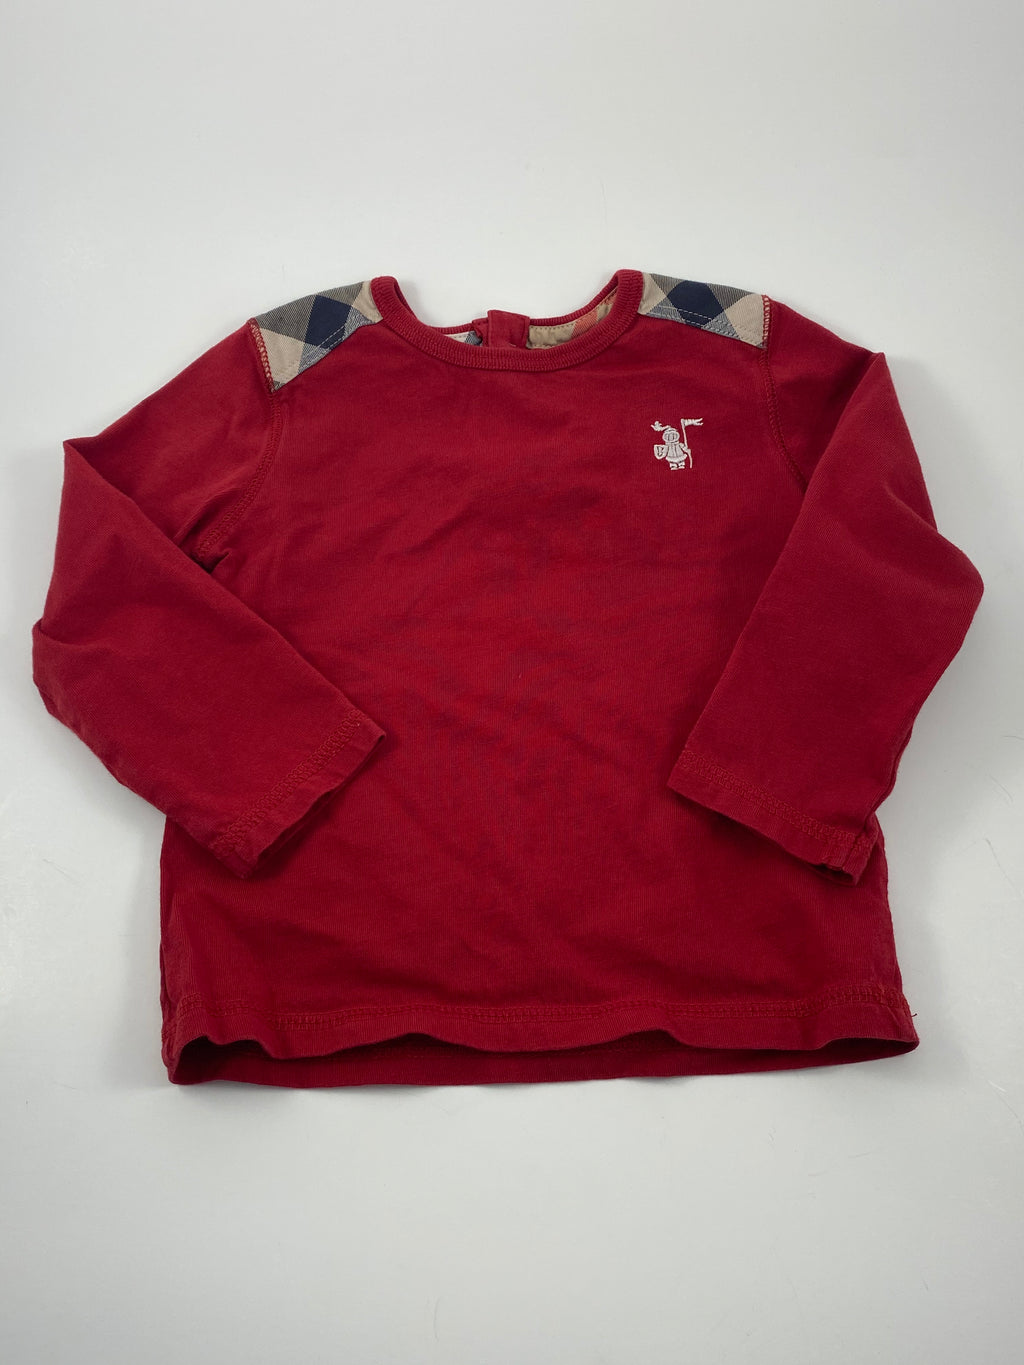 Boy's Long Sleeve Shirt - Size 12-18mo